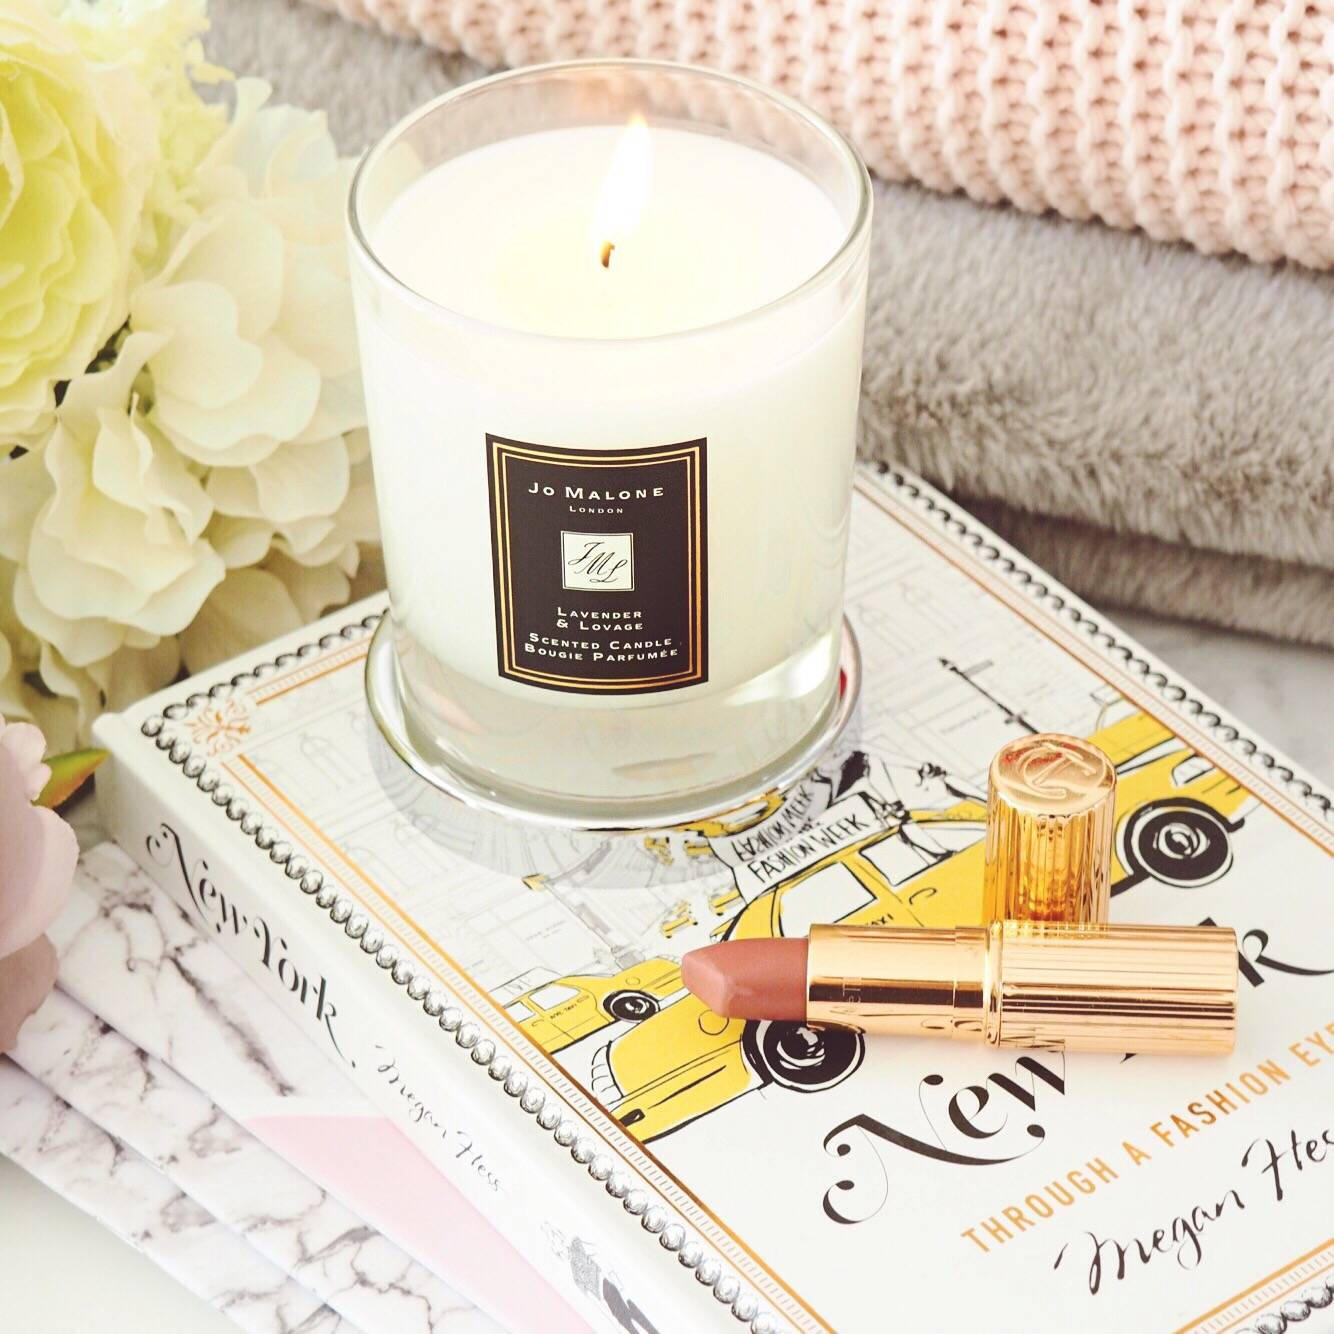 Jo Malone Lavender and Lovage Candle